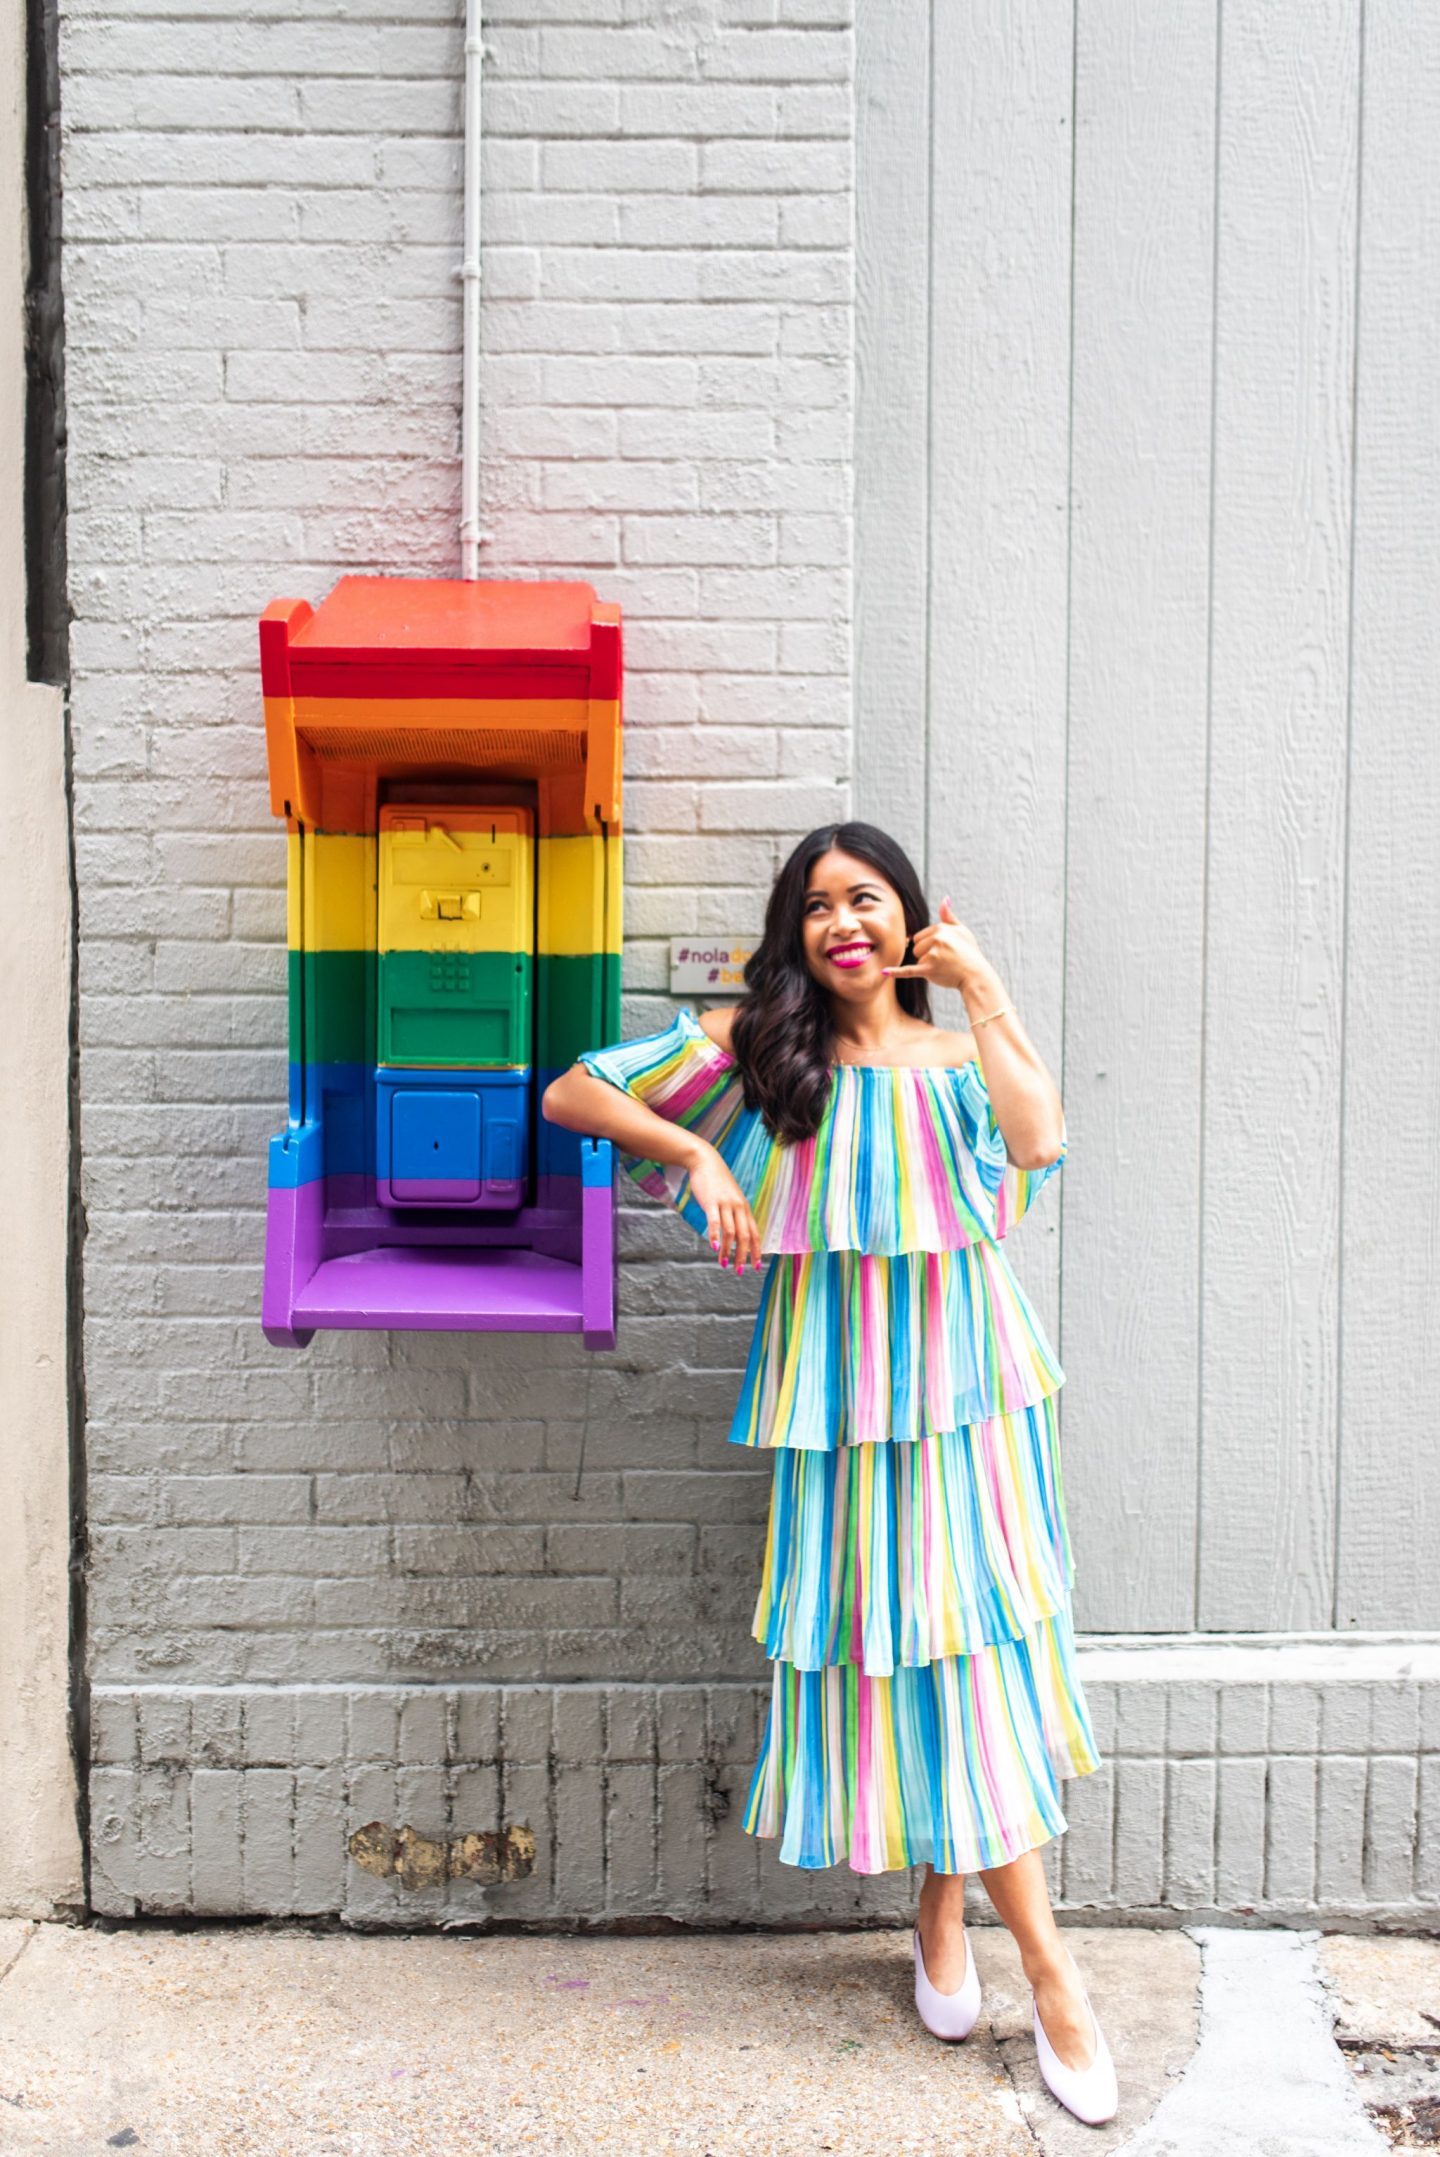 Rainbow Payphone - Downtown New Orleans - Emmas Edition